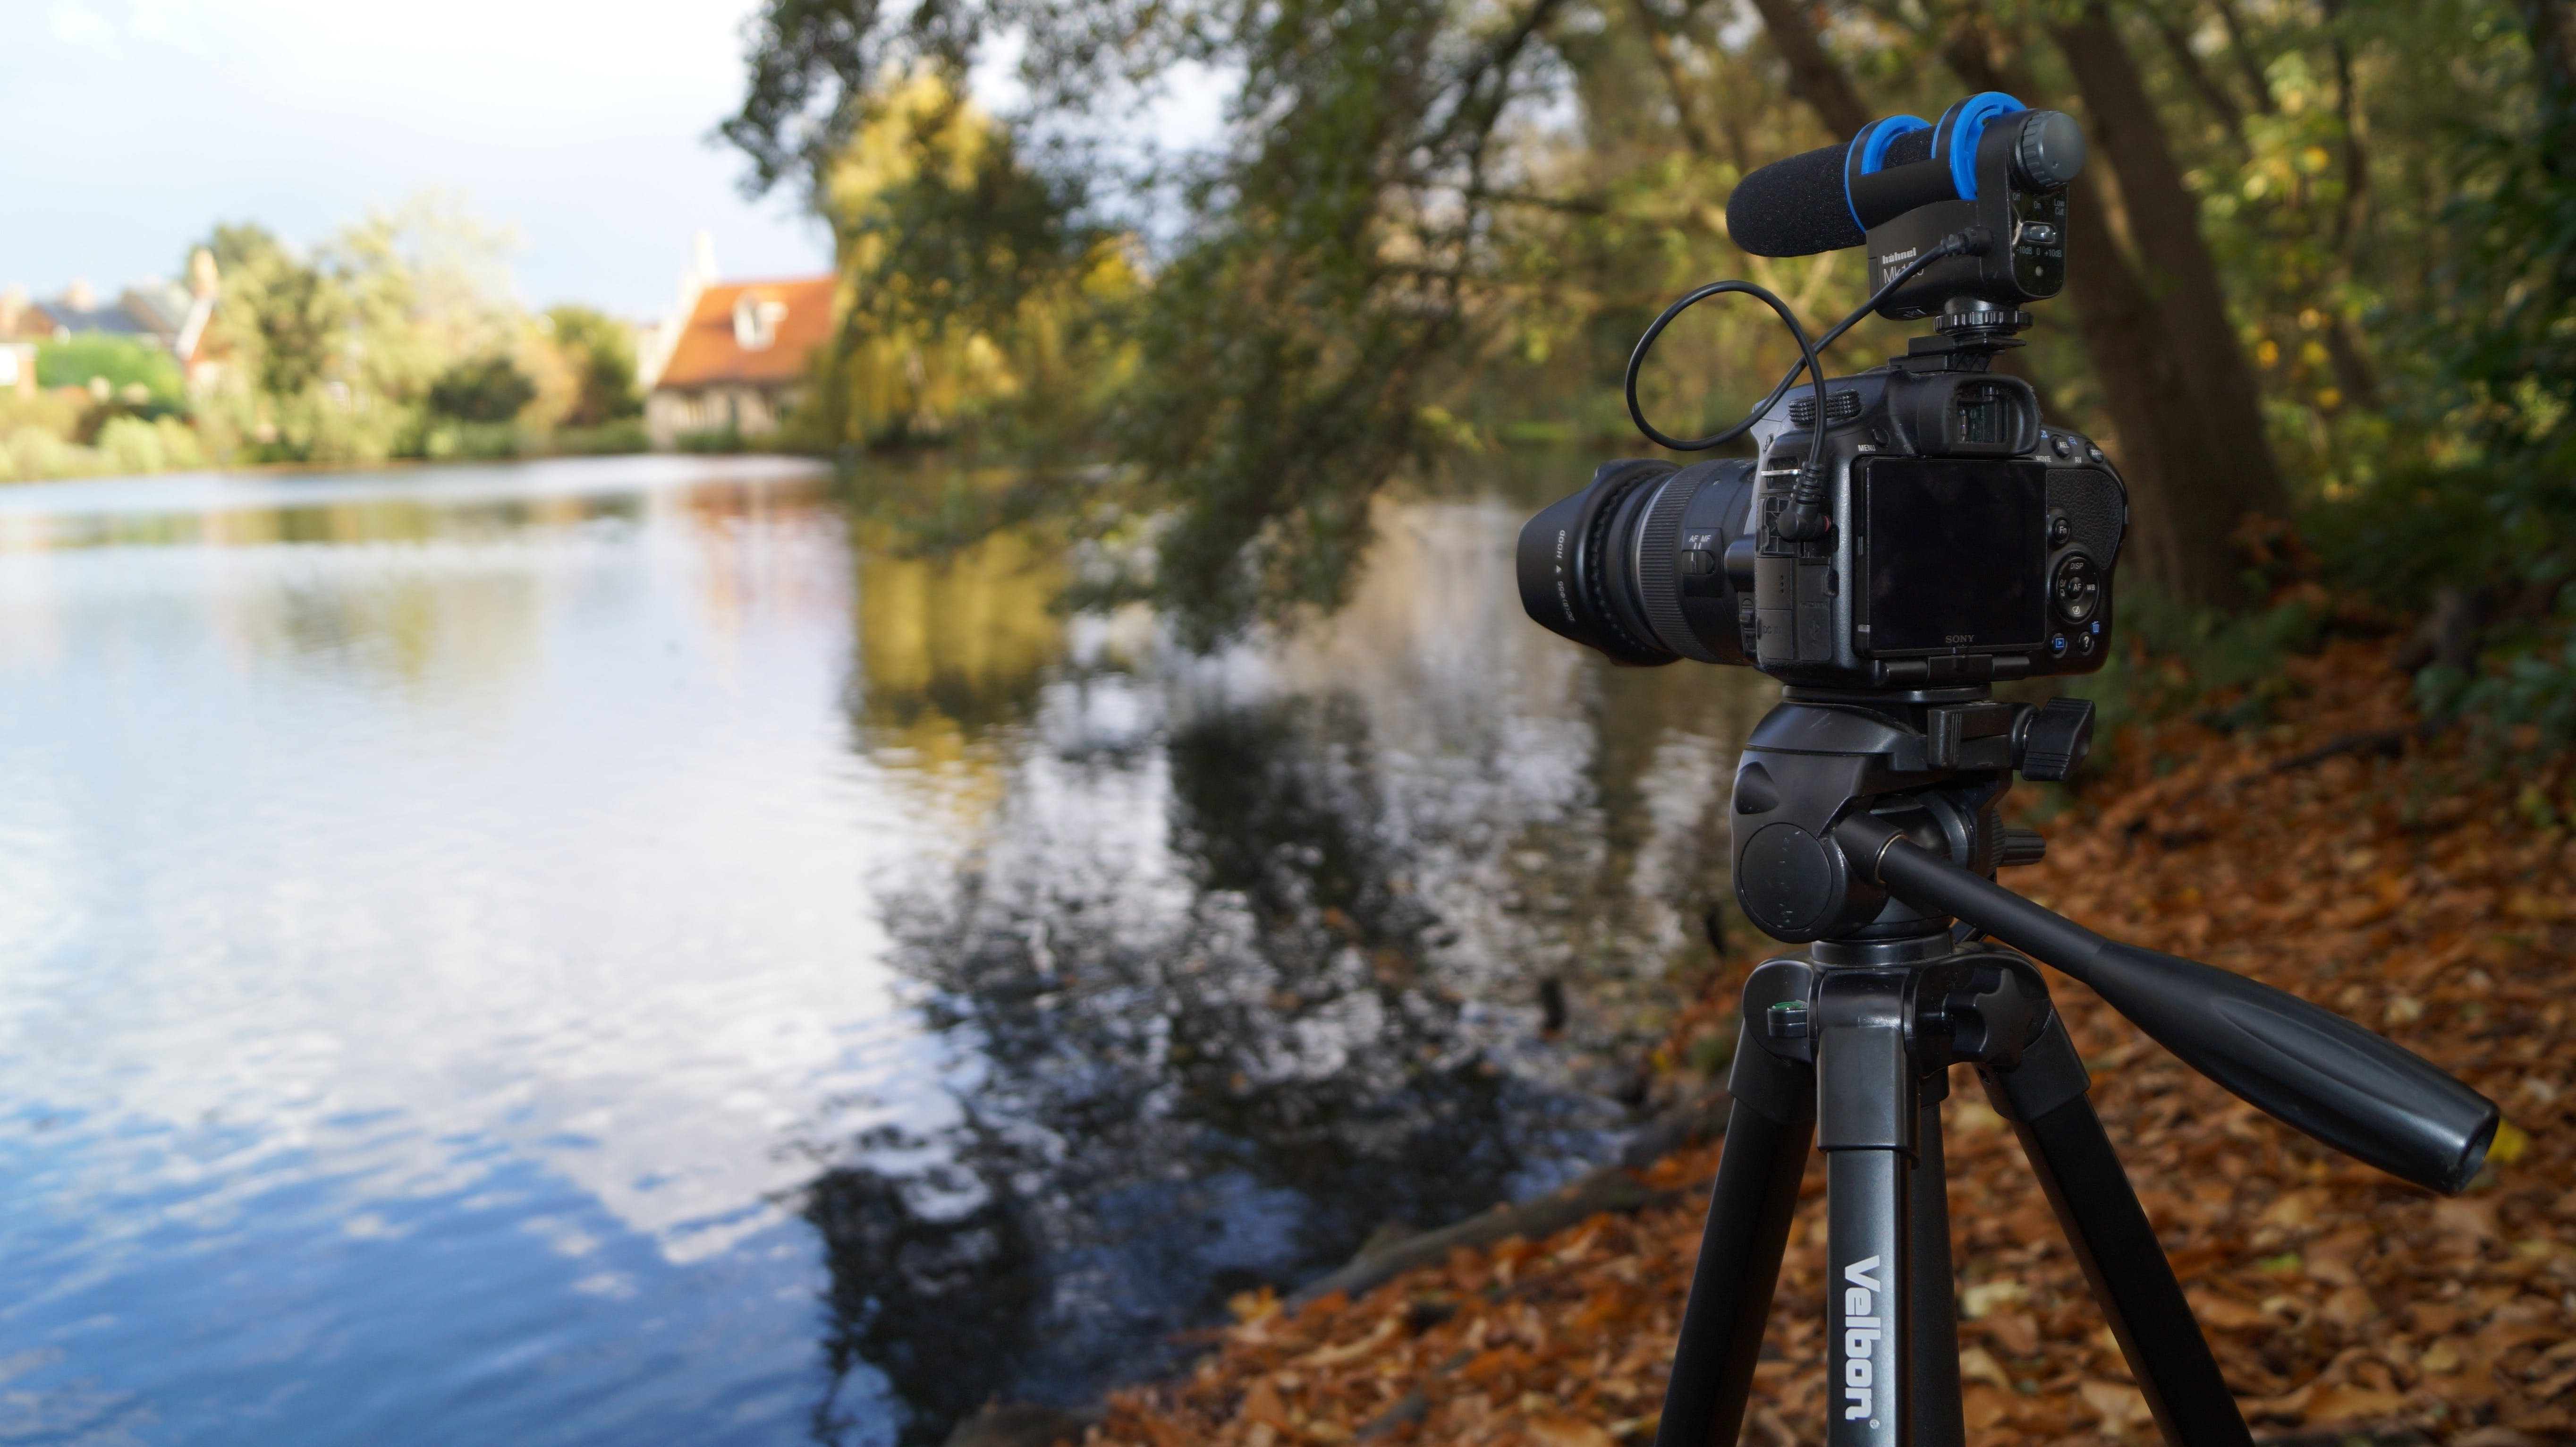 Free stock photo of water, camera, trees, lens